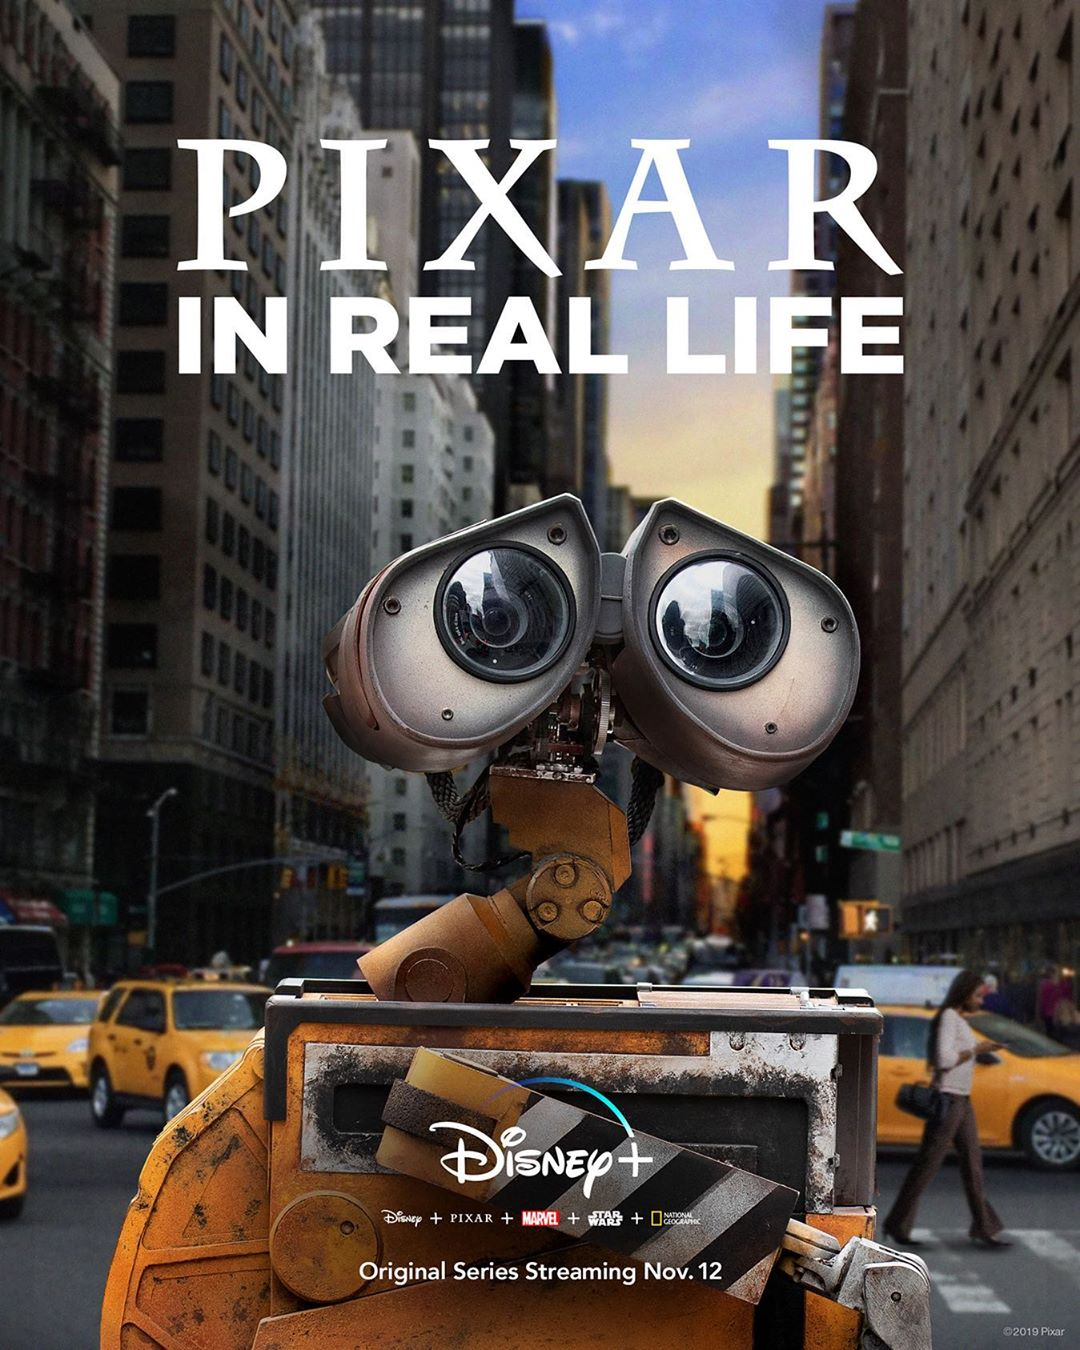 affiche poster pixar vrai real life disney